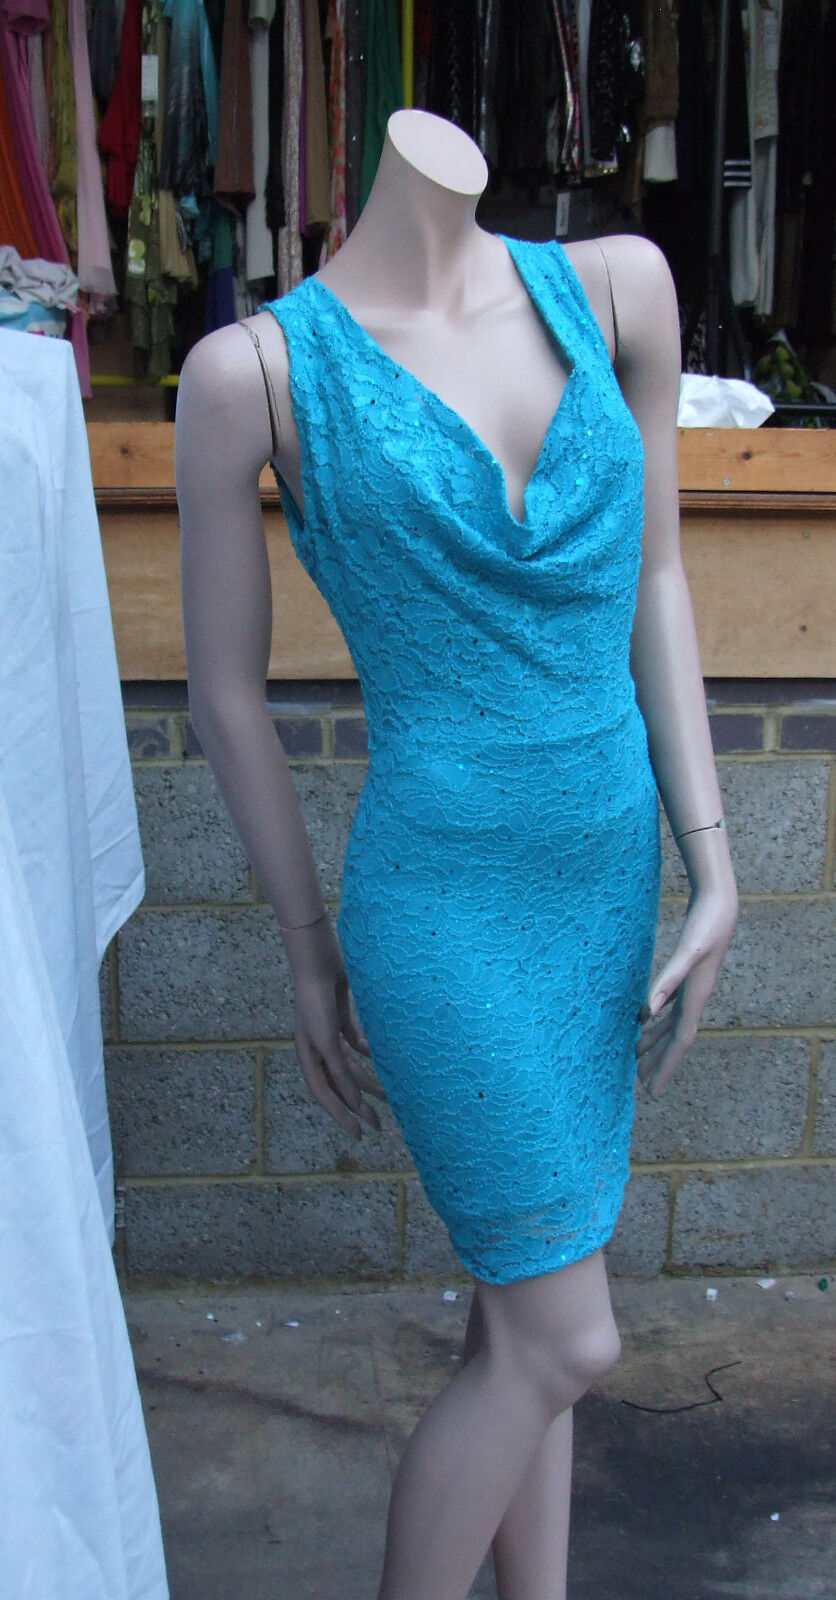 Exquisite Lipsy 8 BNWOT Turquoise Aqua-Marine Bling Sequin Sexy Divine Dress SEE